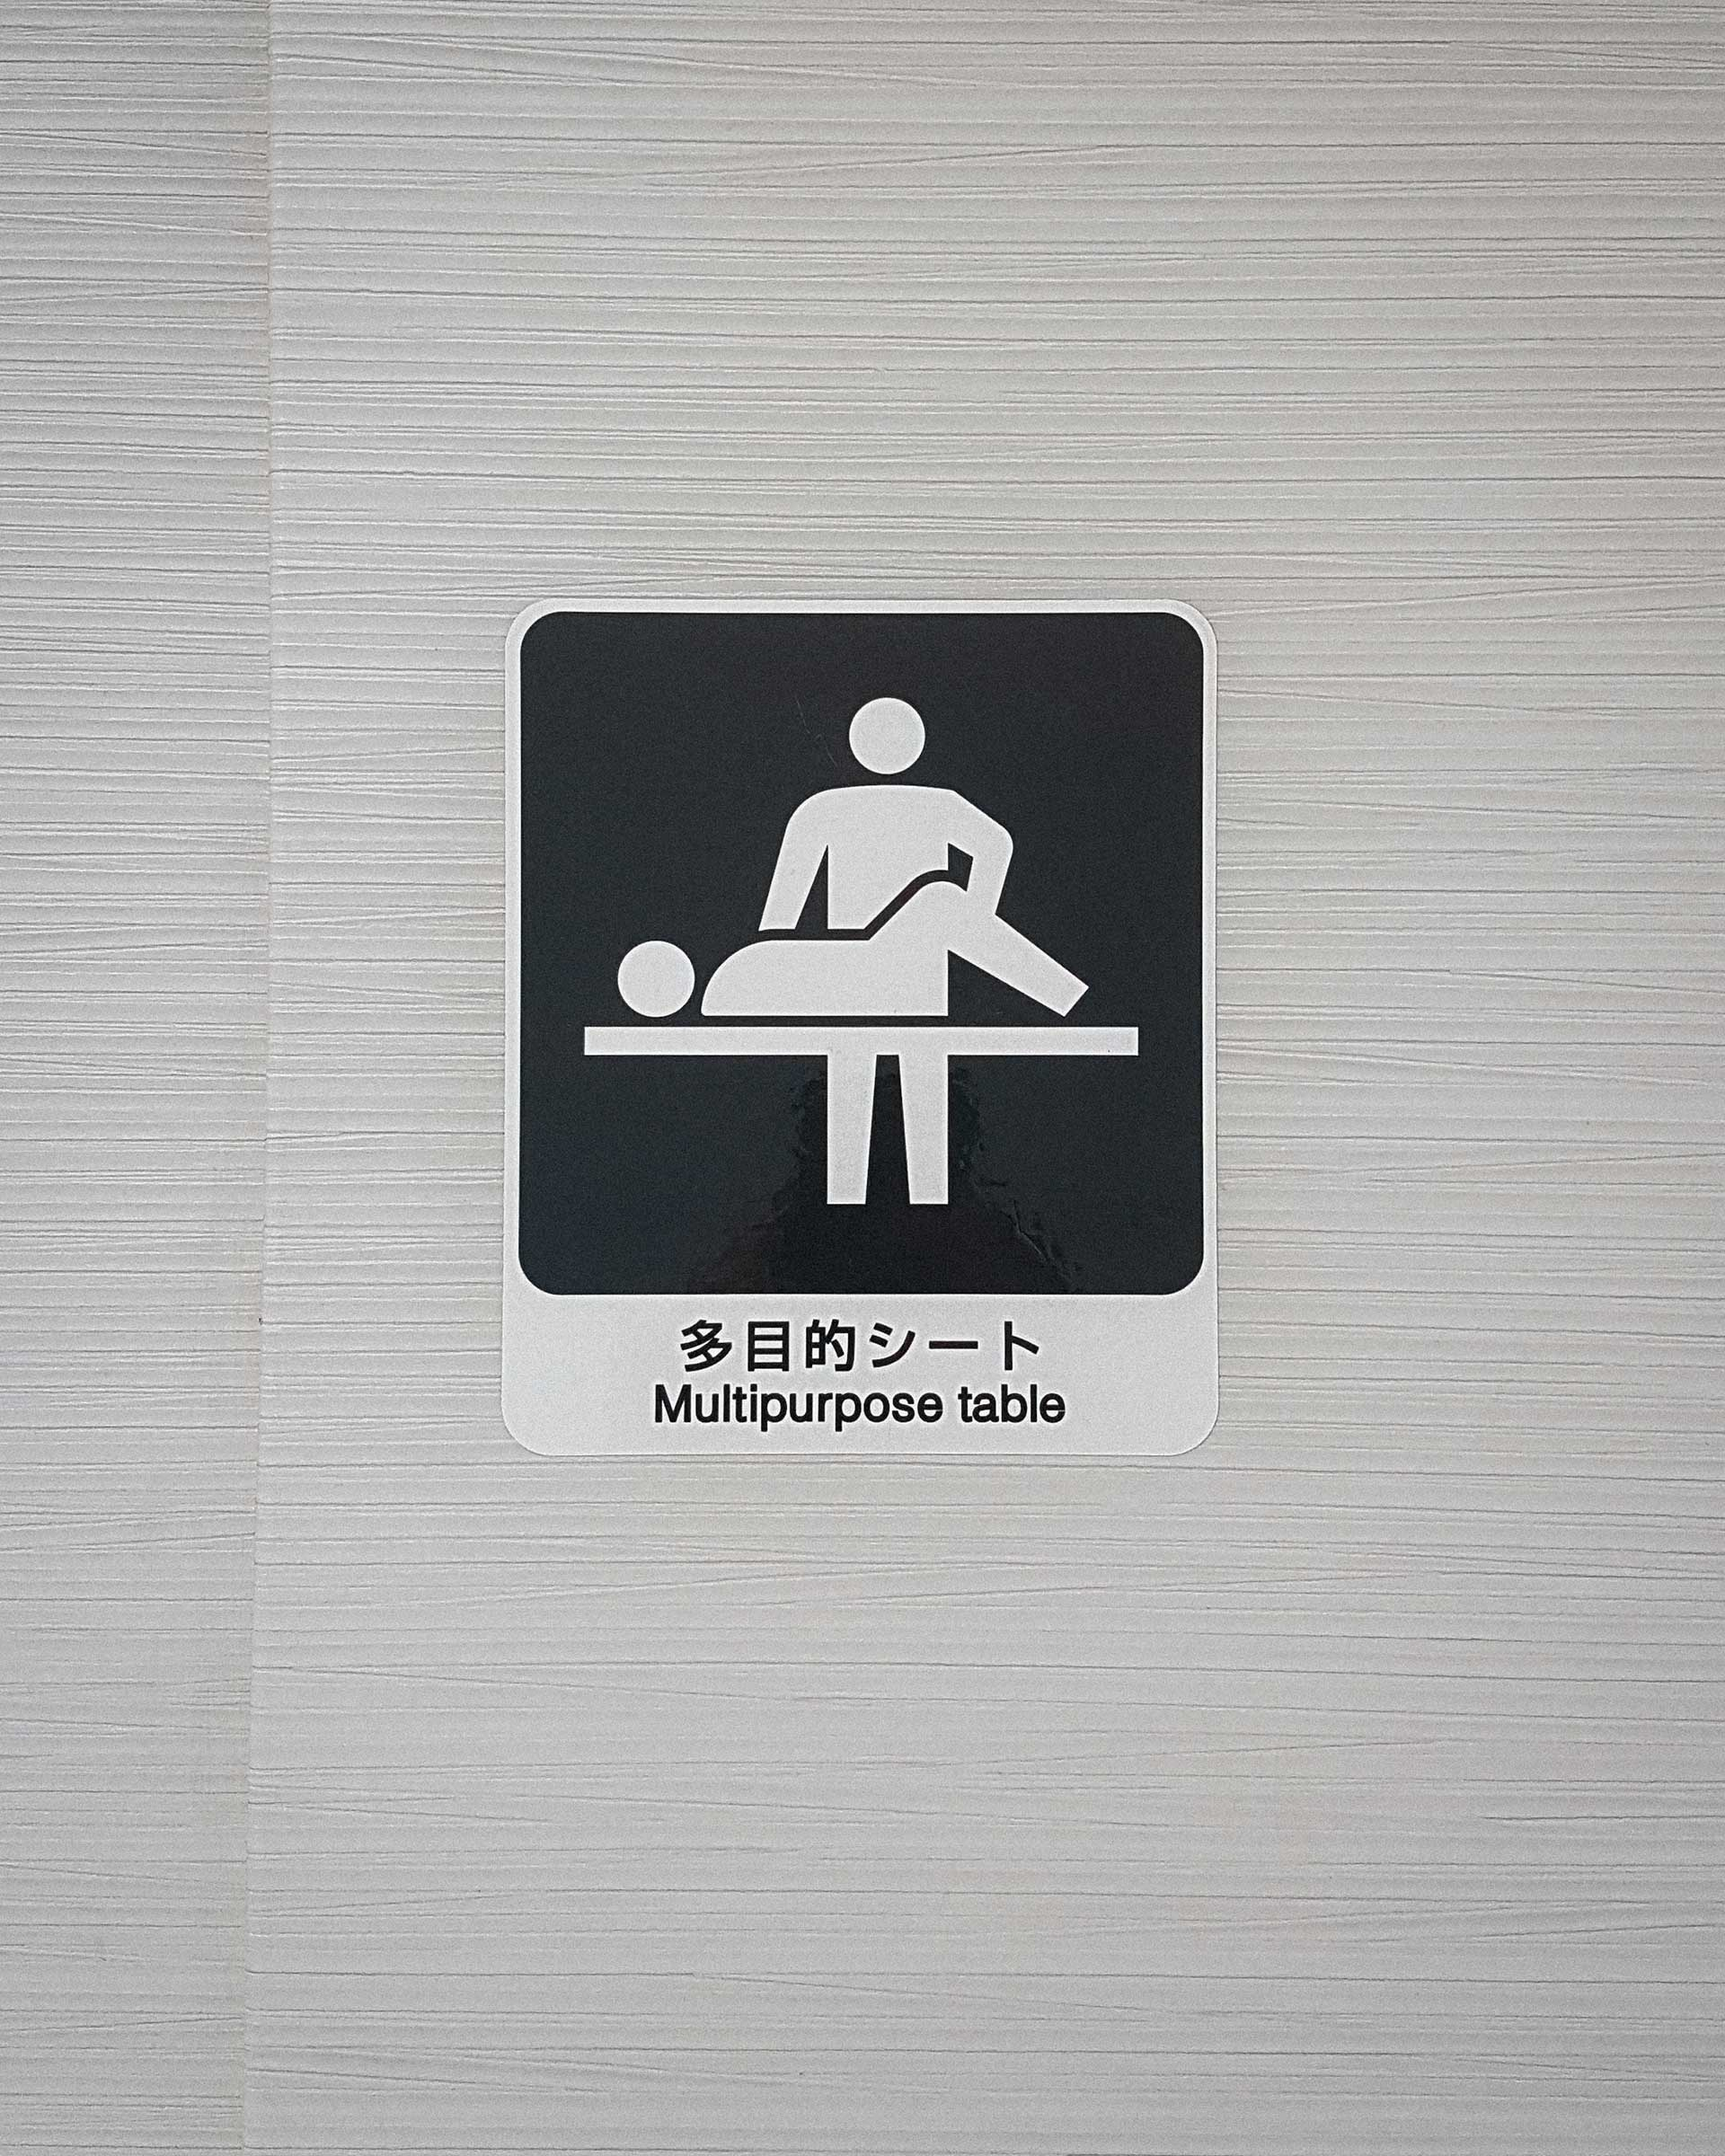 A reeeeeally 'interesting' sign outside of the toilet area.